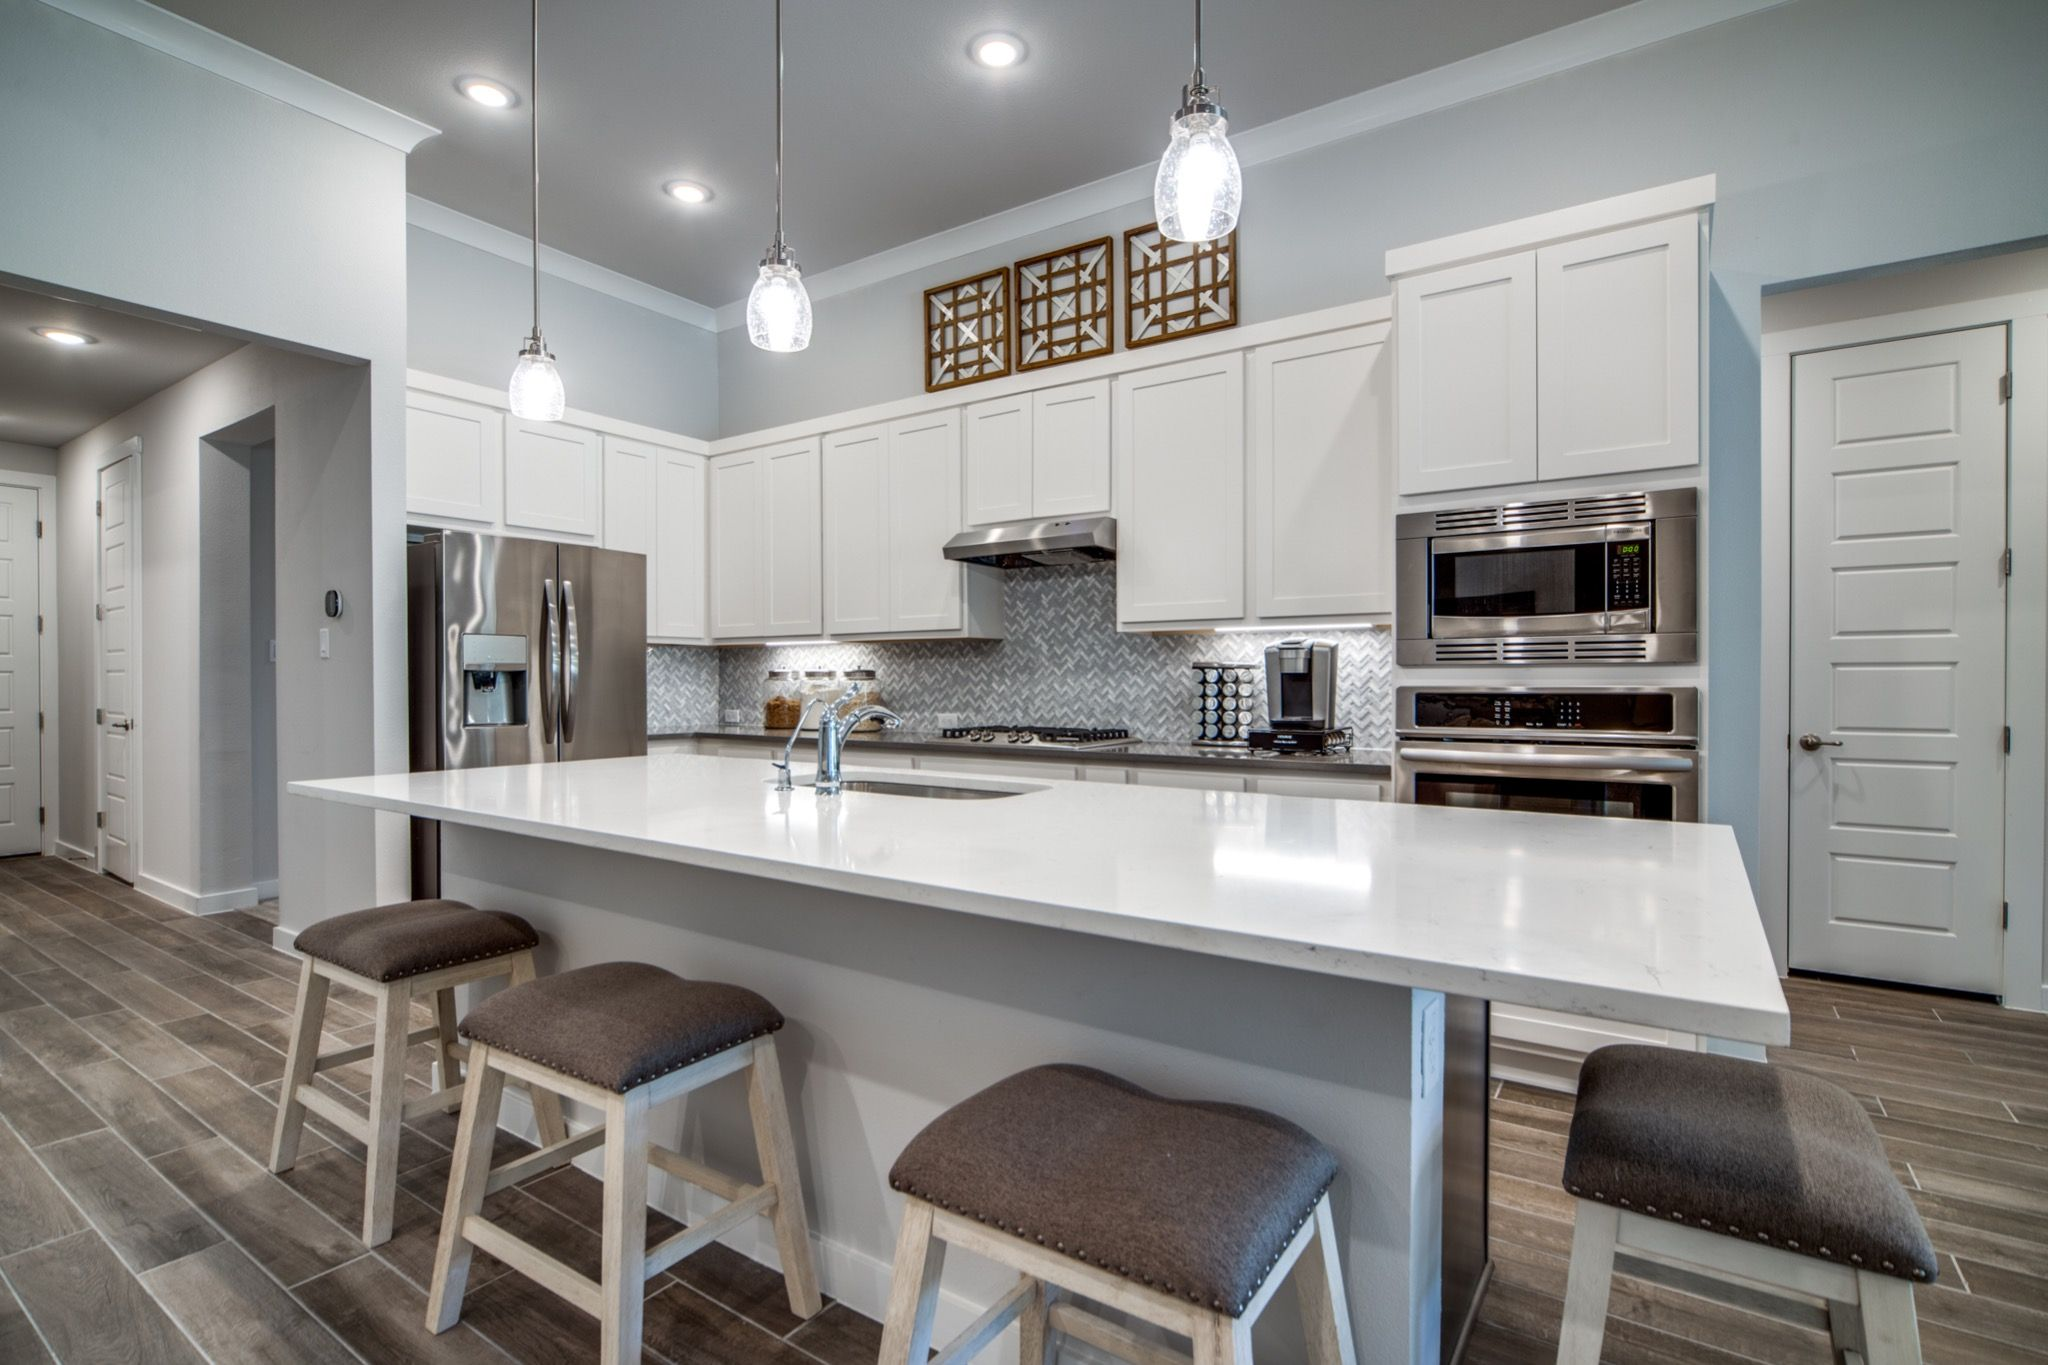 'Regent Park' by Kindred Homes in San Antonio